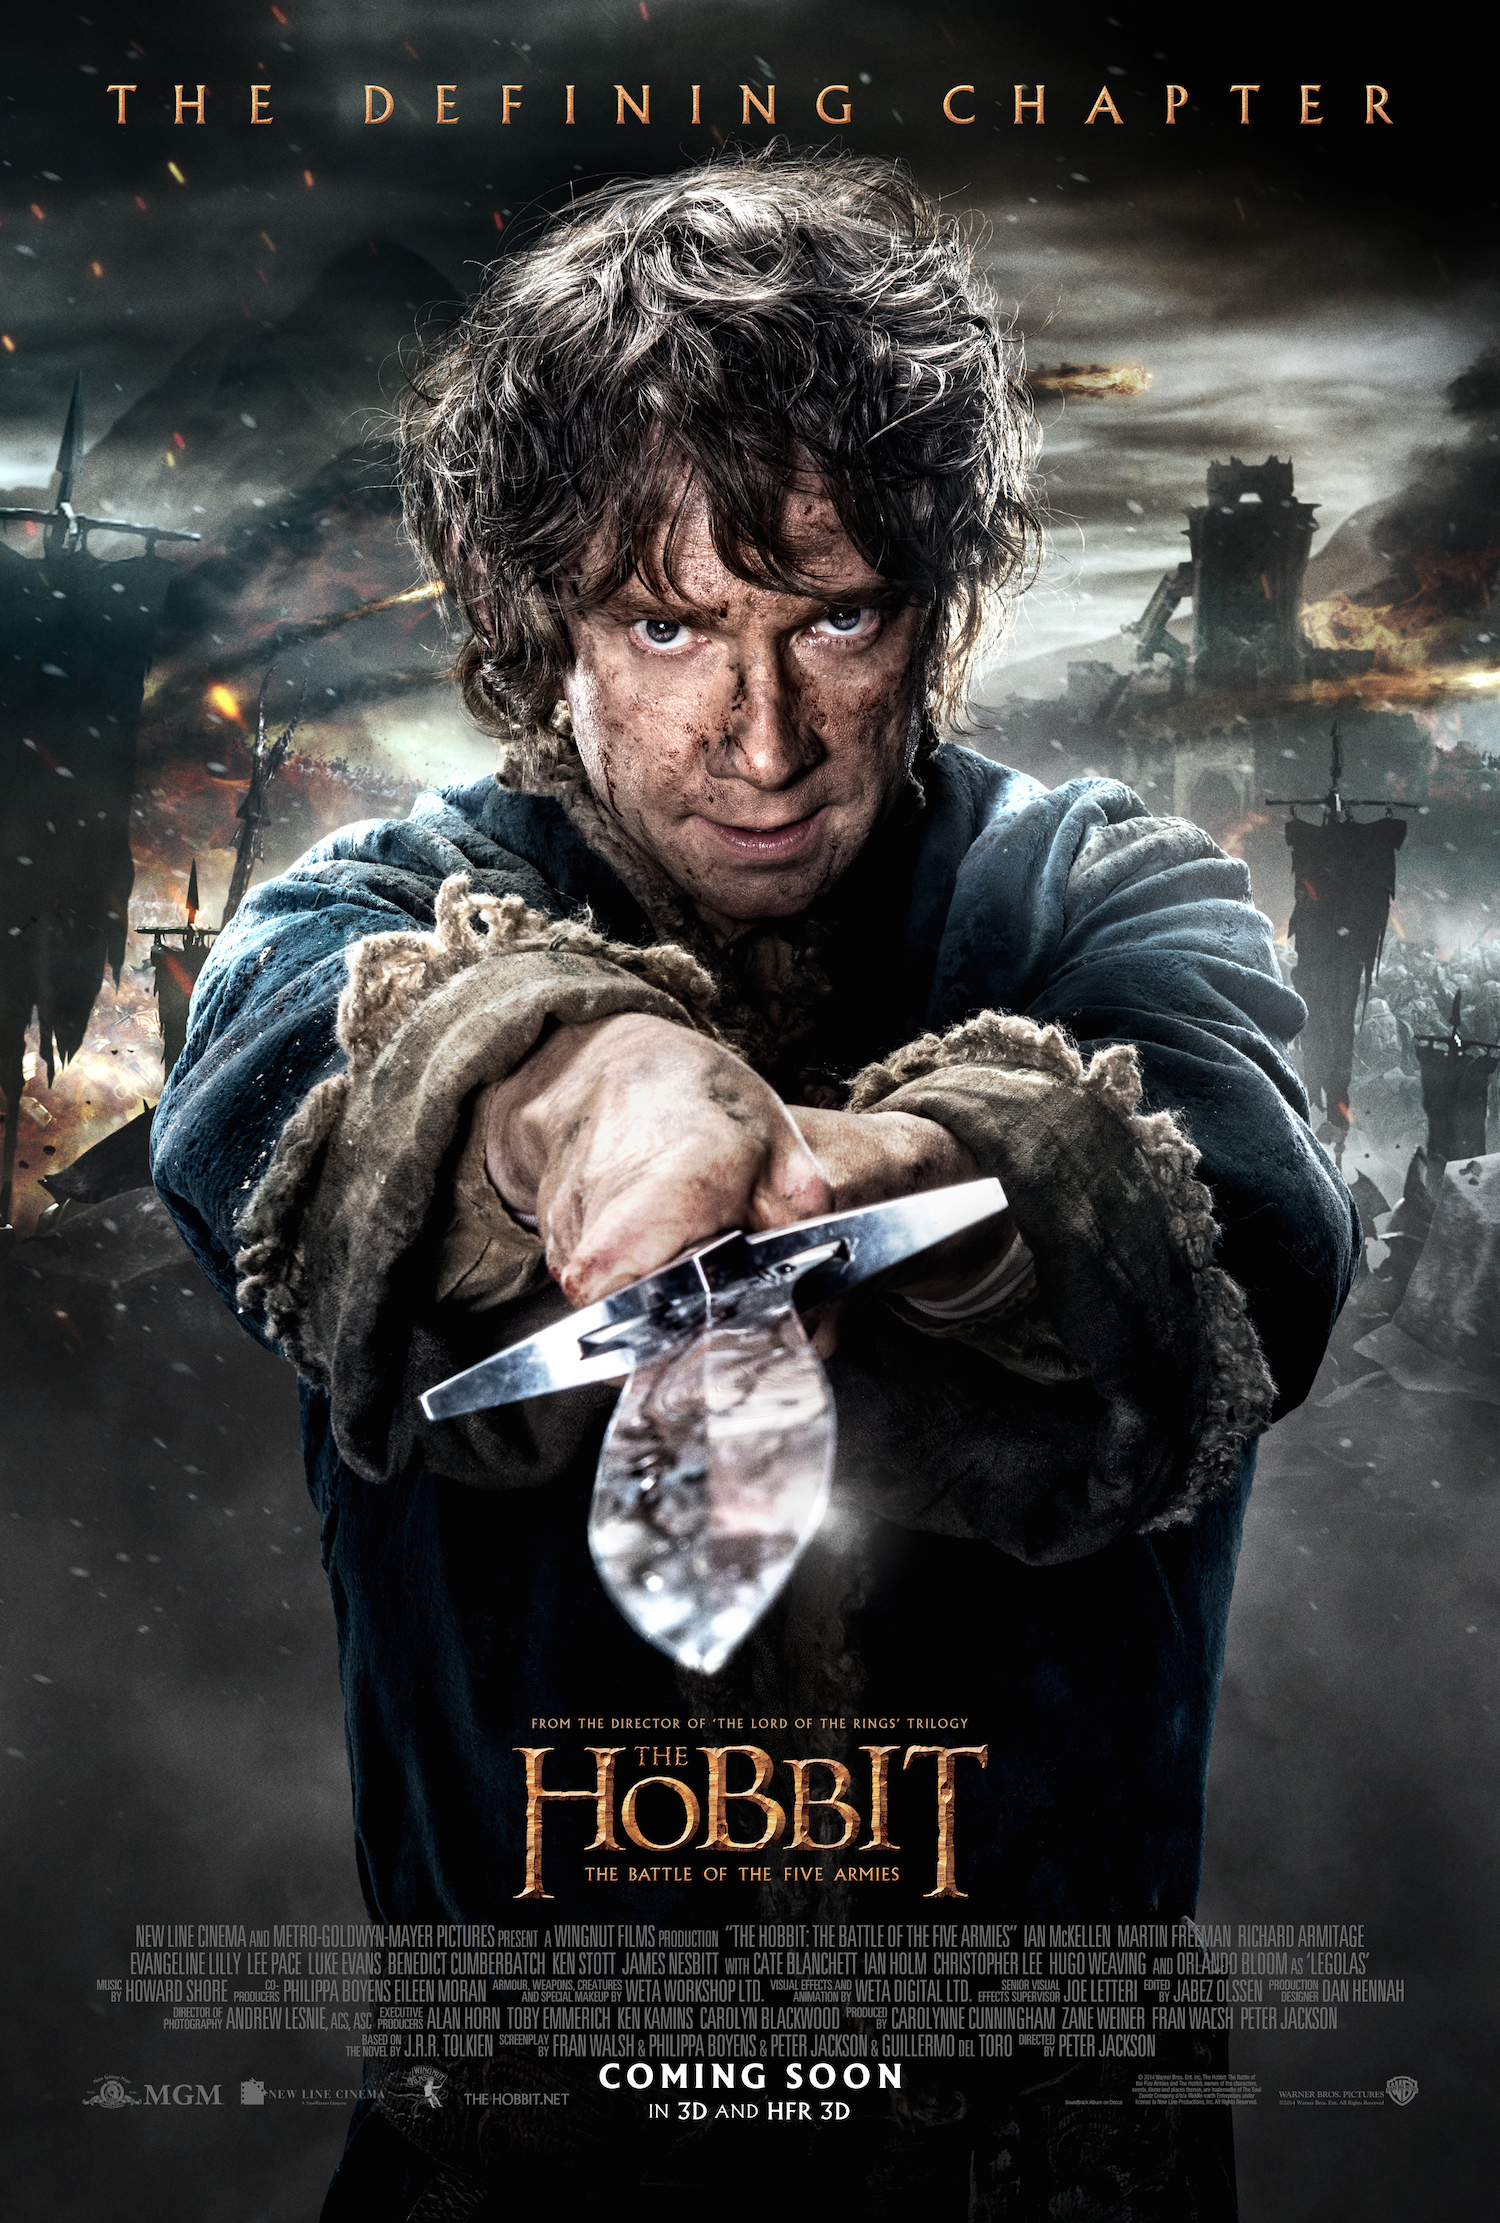 The Hobbit – The Battle of the Five Armies poster